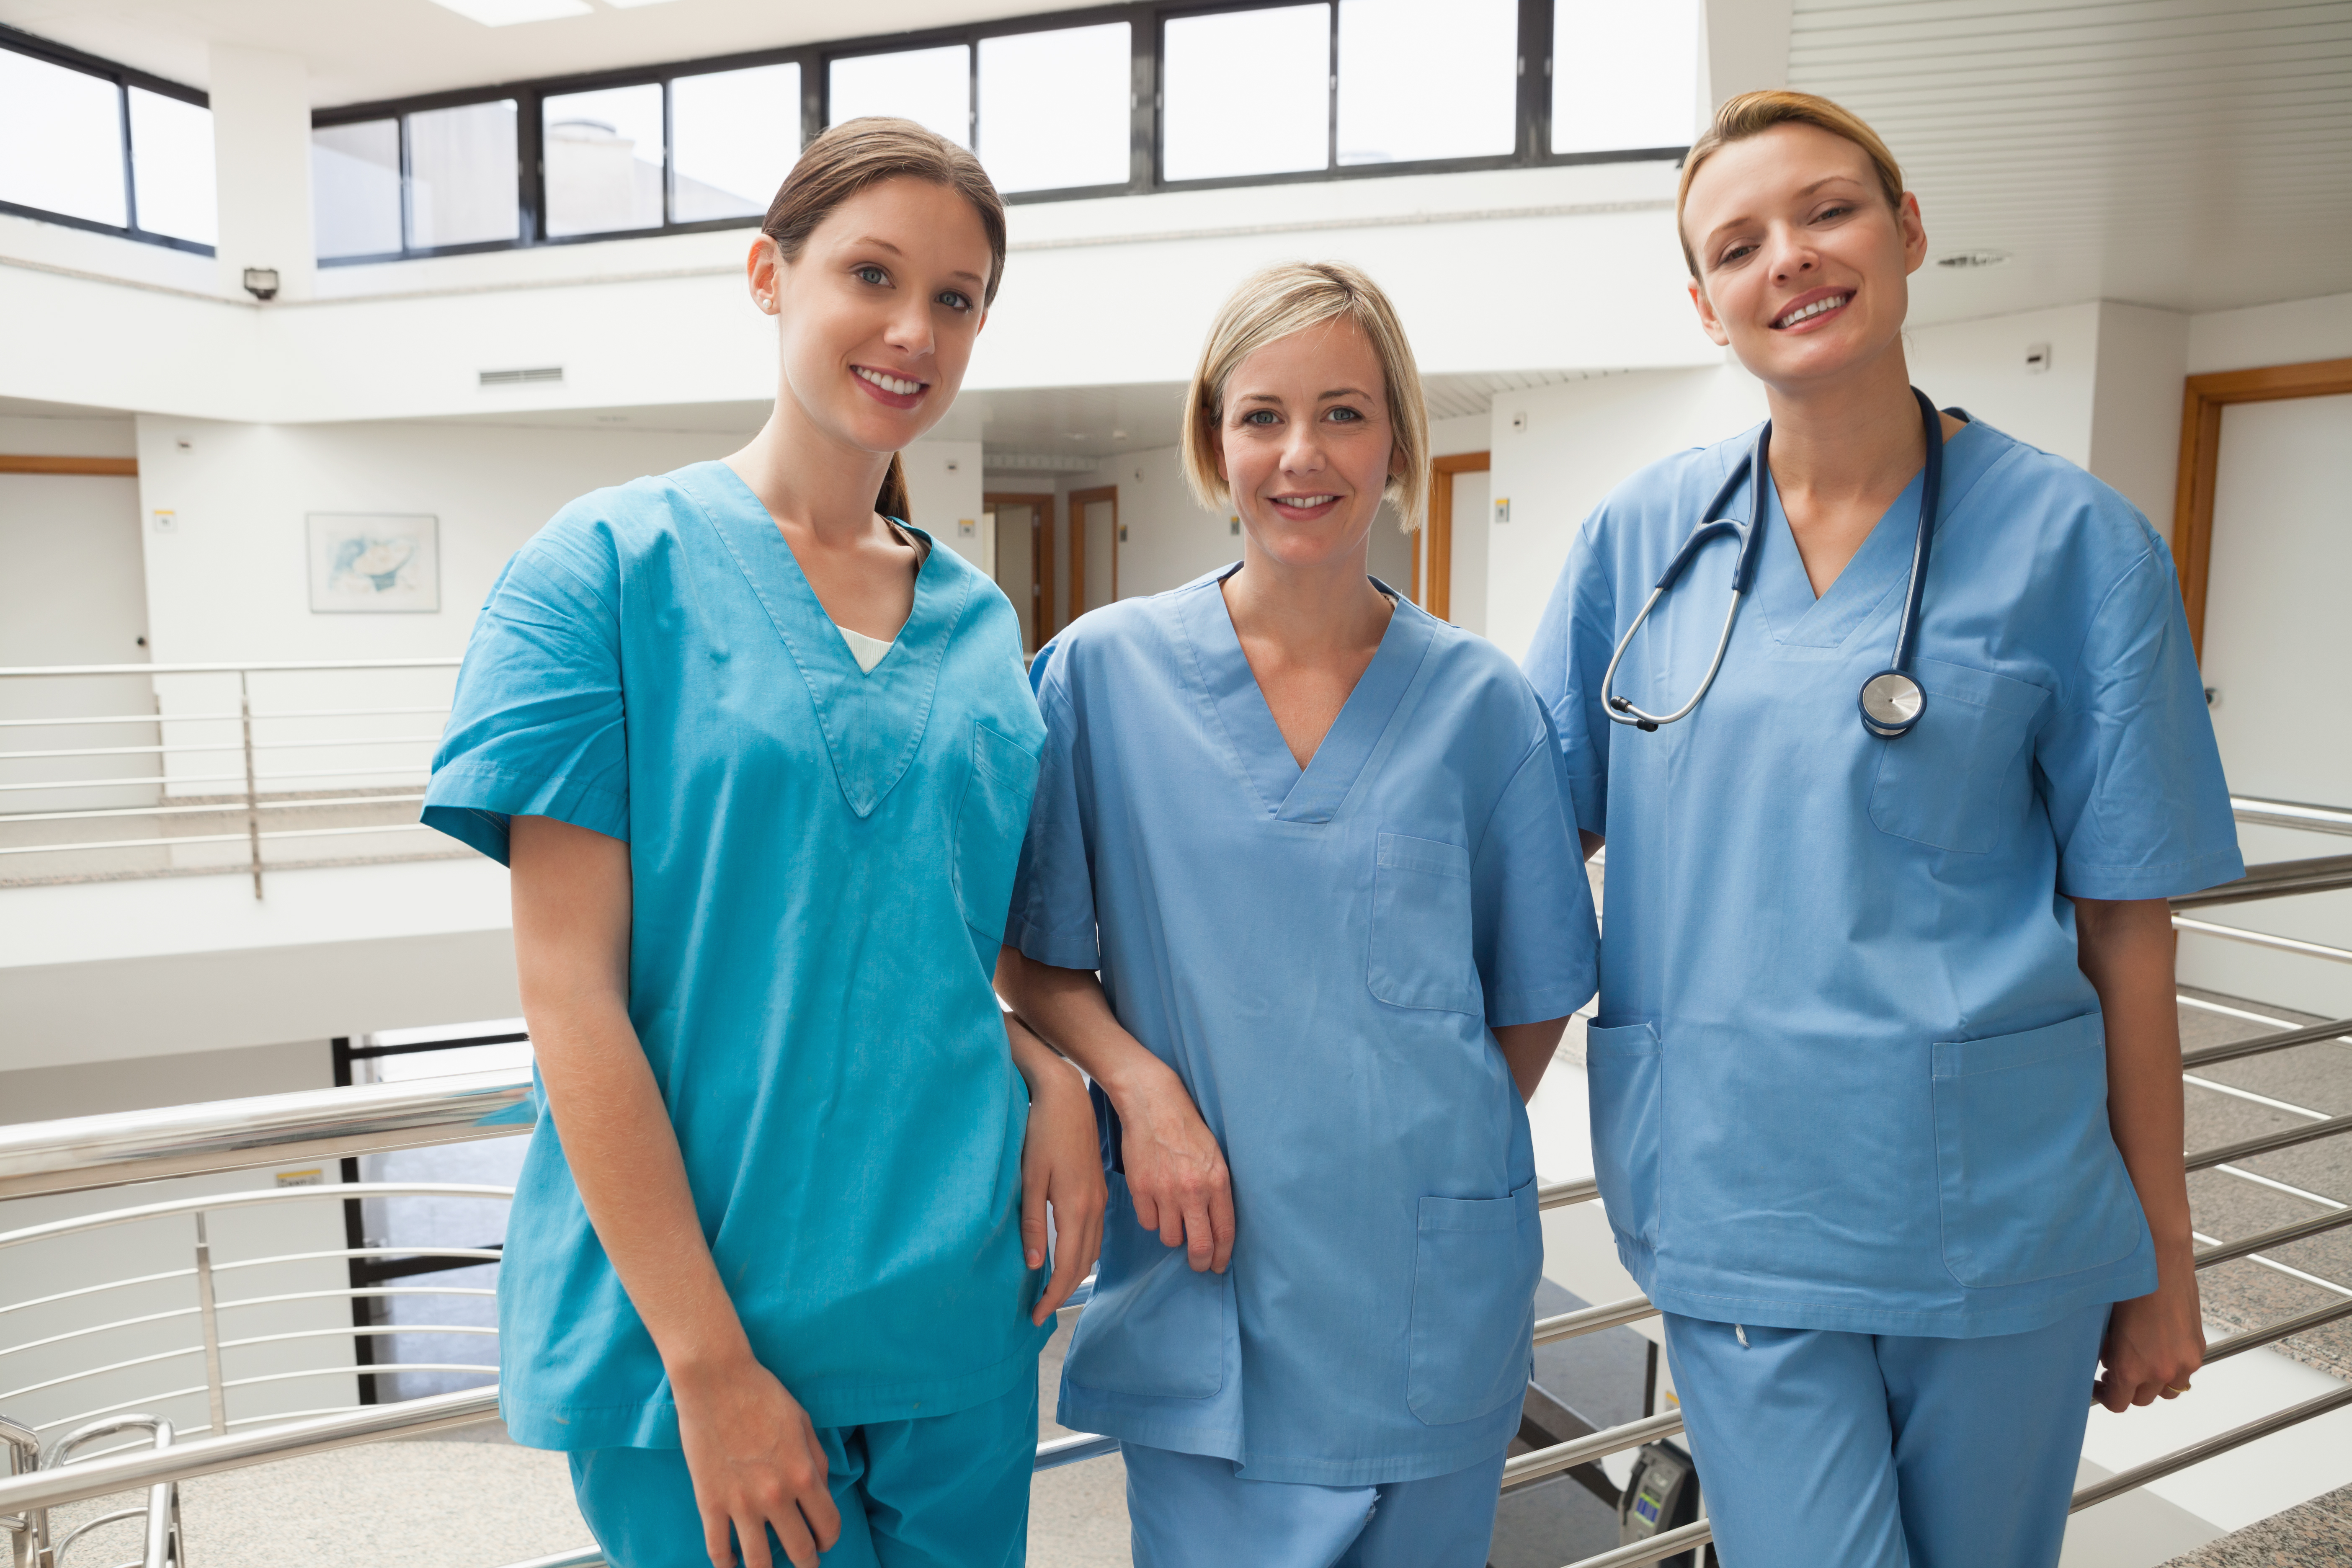 3 nurses smiling while working in the hospital